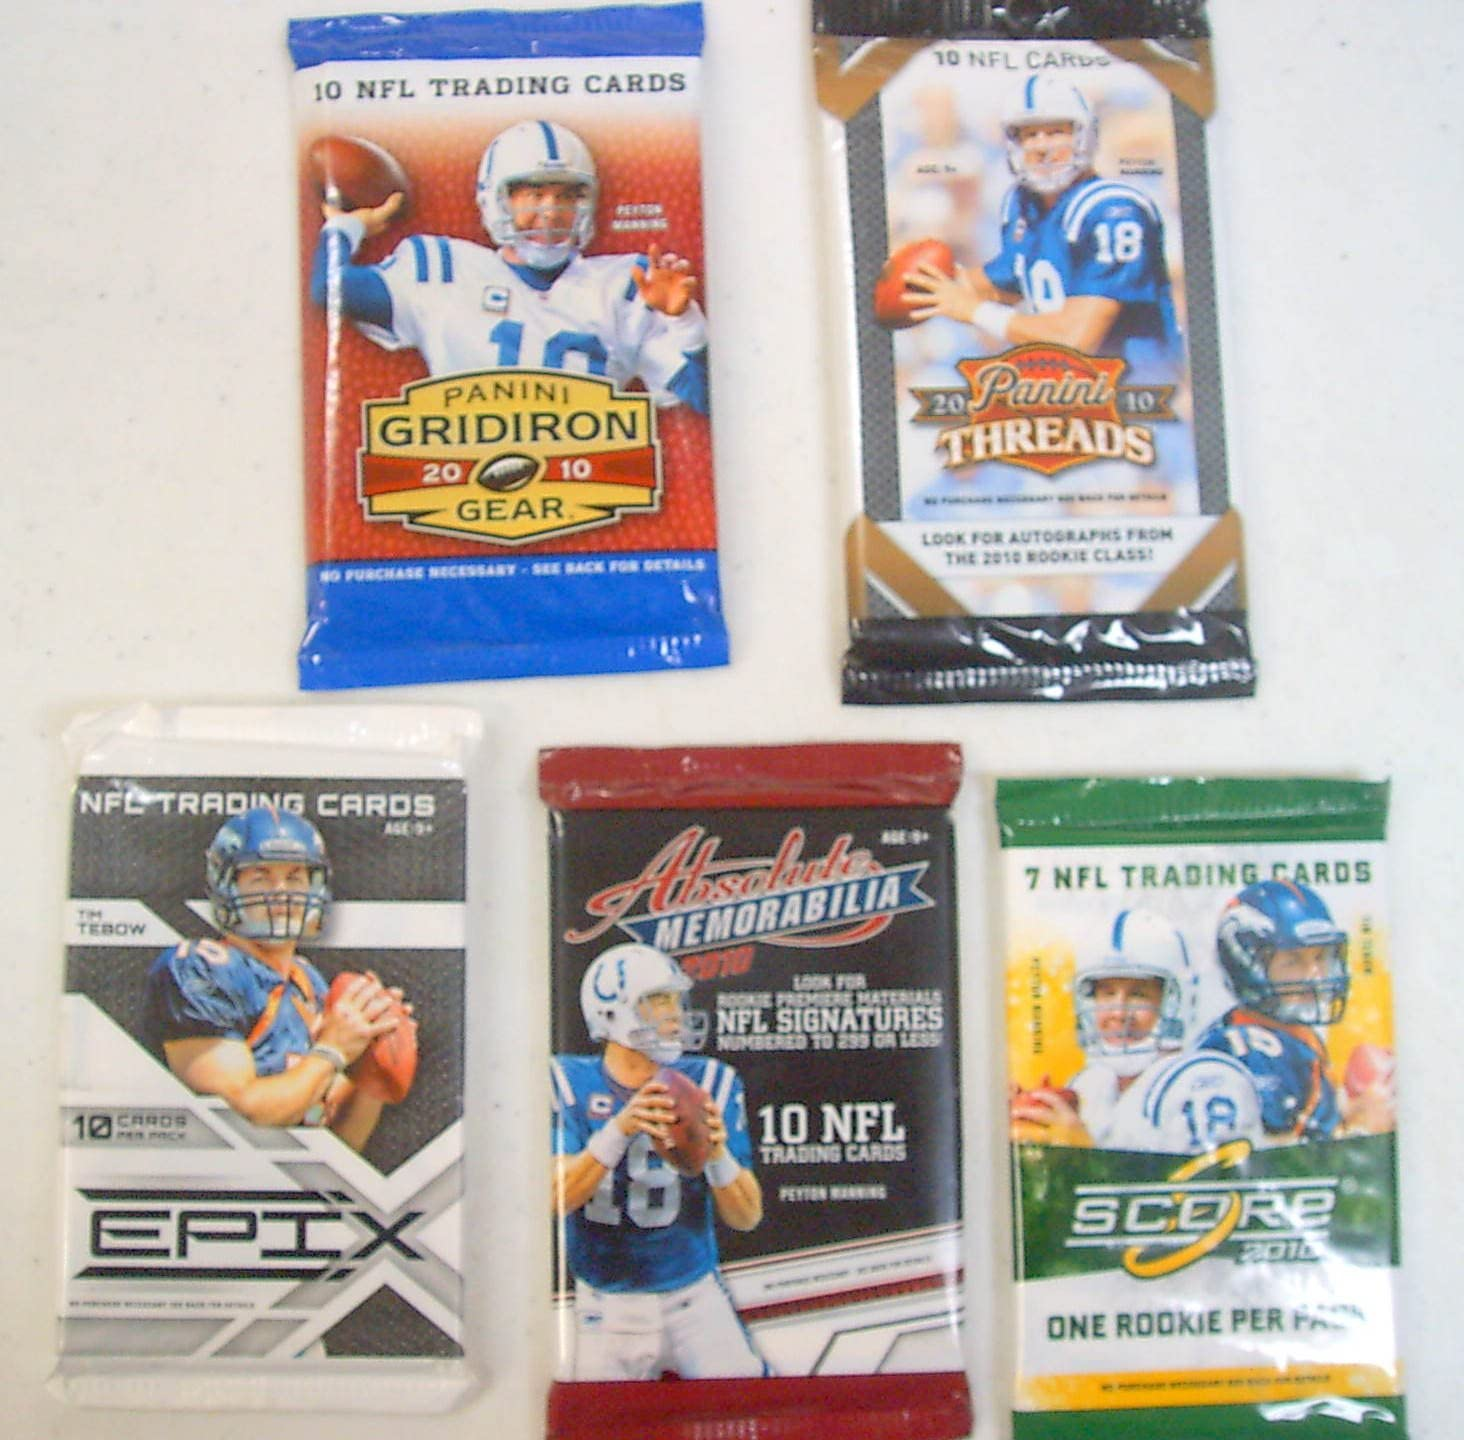 B0068S7T2A 5 (Five) 2010 NFL Football PACKS. EPIX, Absolute MEMORABILIA, Panini Threads, Gridiron Gear and Score. Look for rookie cards of Tim Tebow, Sam Bradford, Ryan Mathews, Dez Bryant, Colt McCoy, Jahvid Best, Clausen, Suh and many more 81EKubNcViL